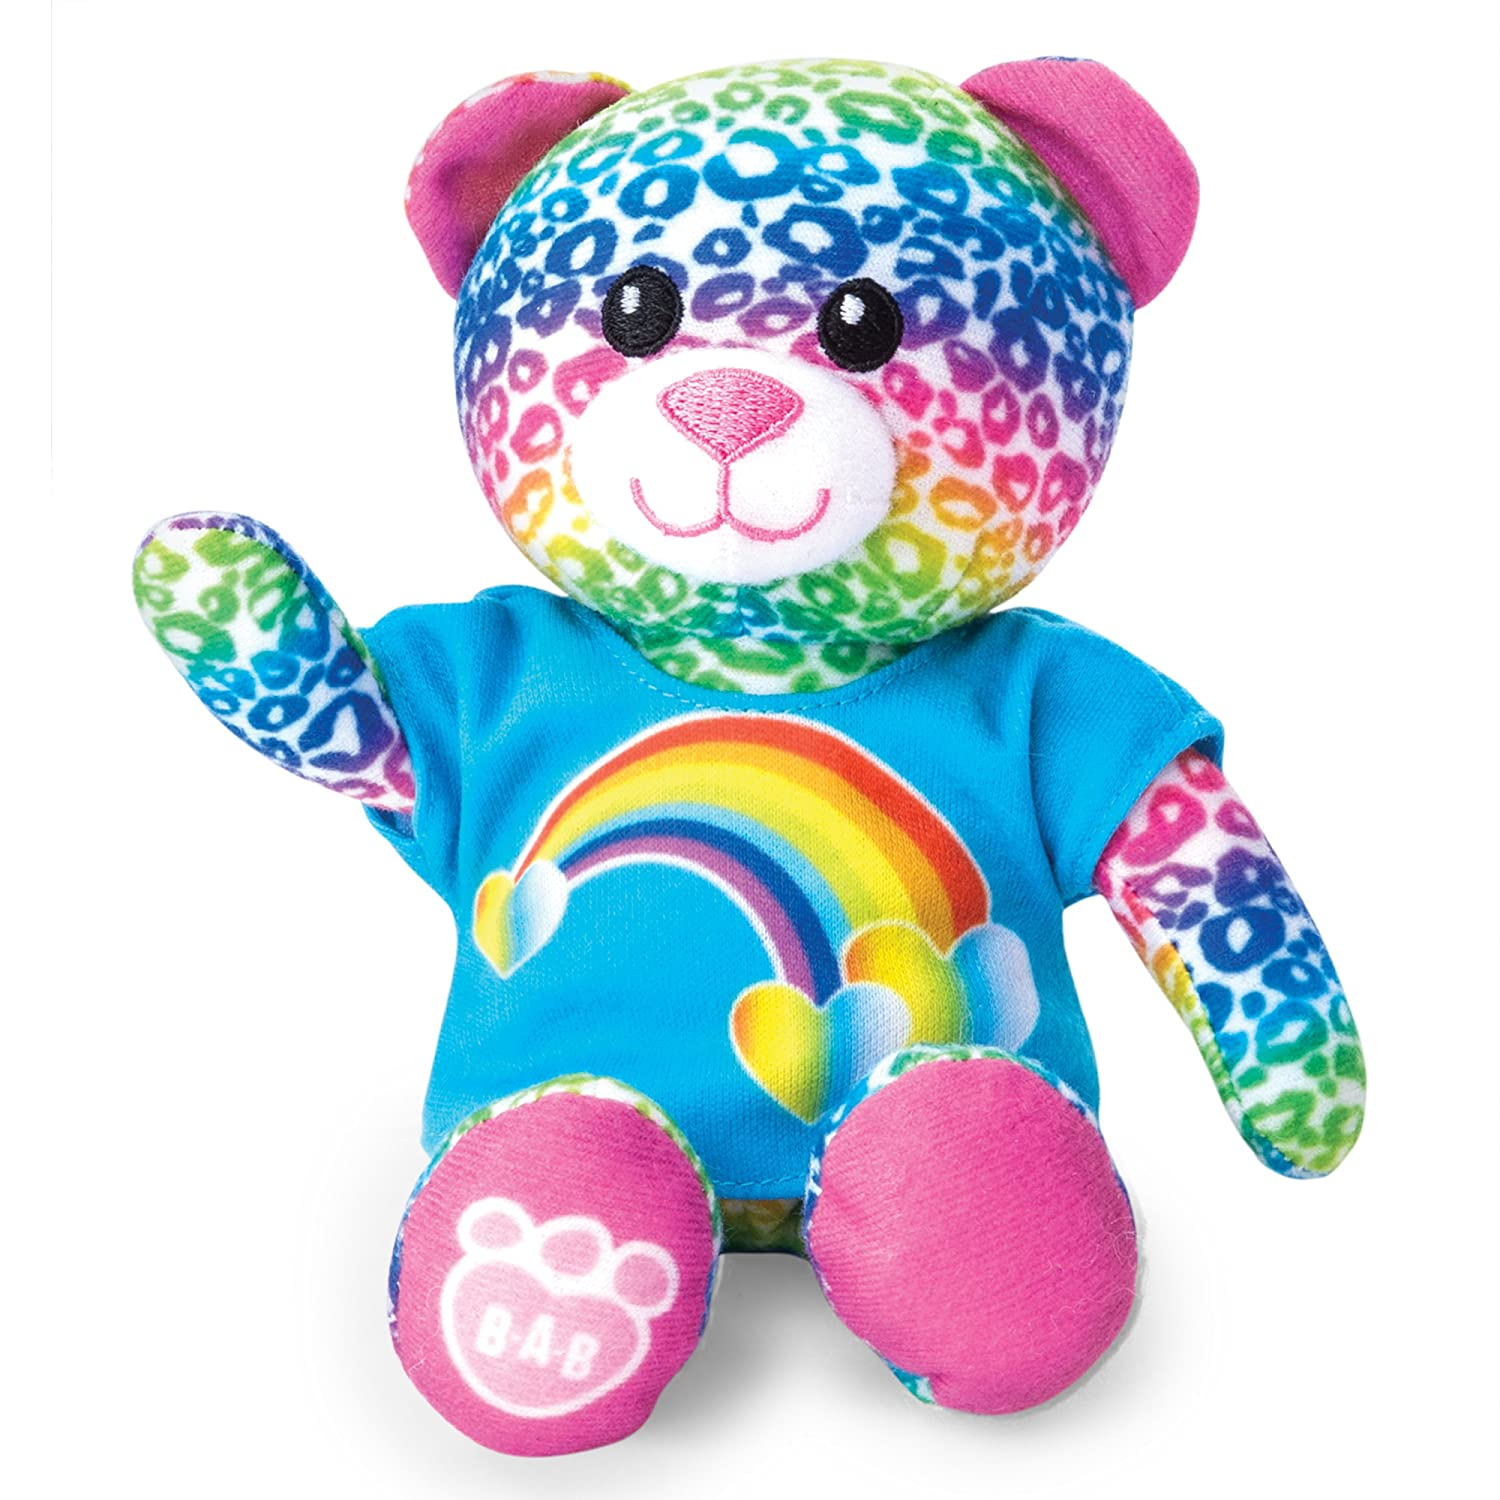 Amazon Com Build A Bear Workshop Stuffing Station By Spin Master Edition Varies Brown Or Rainbow Toys Games